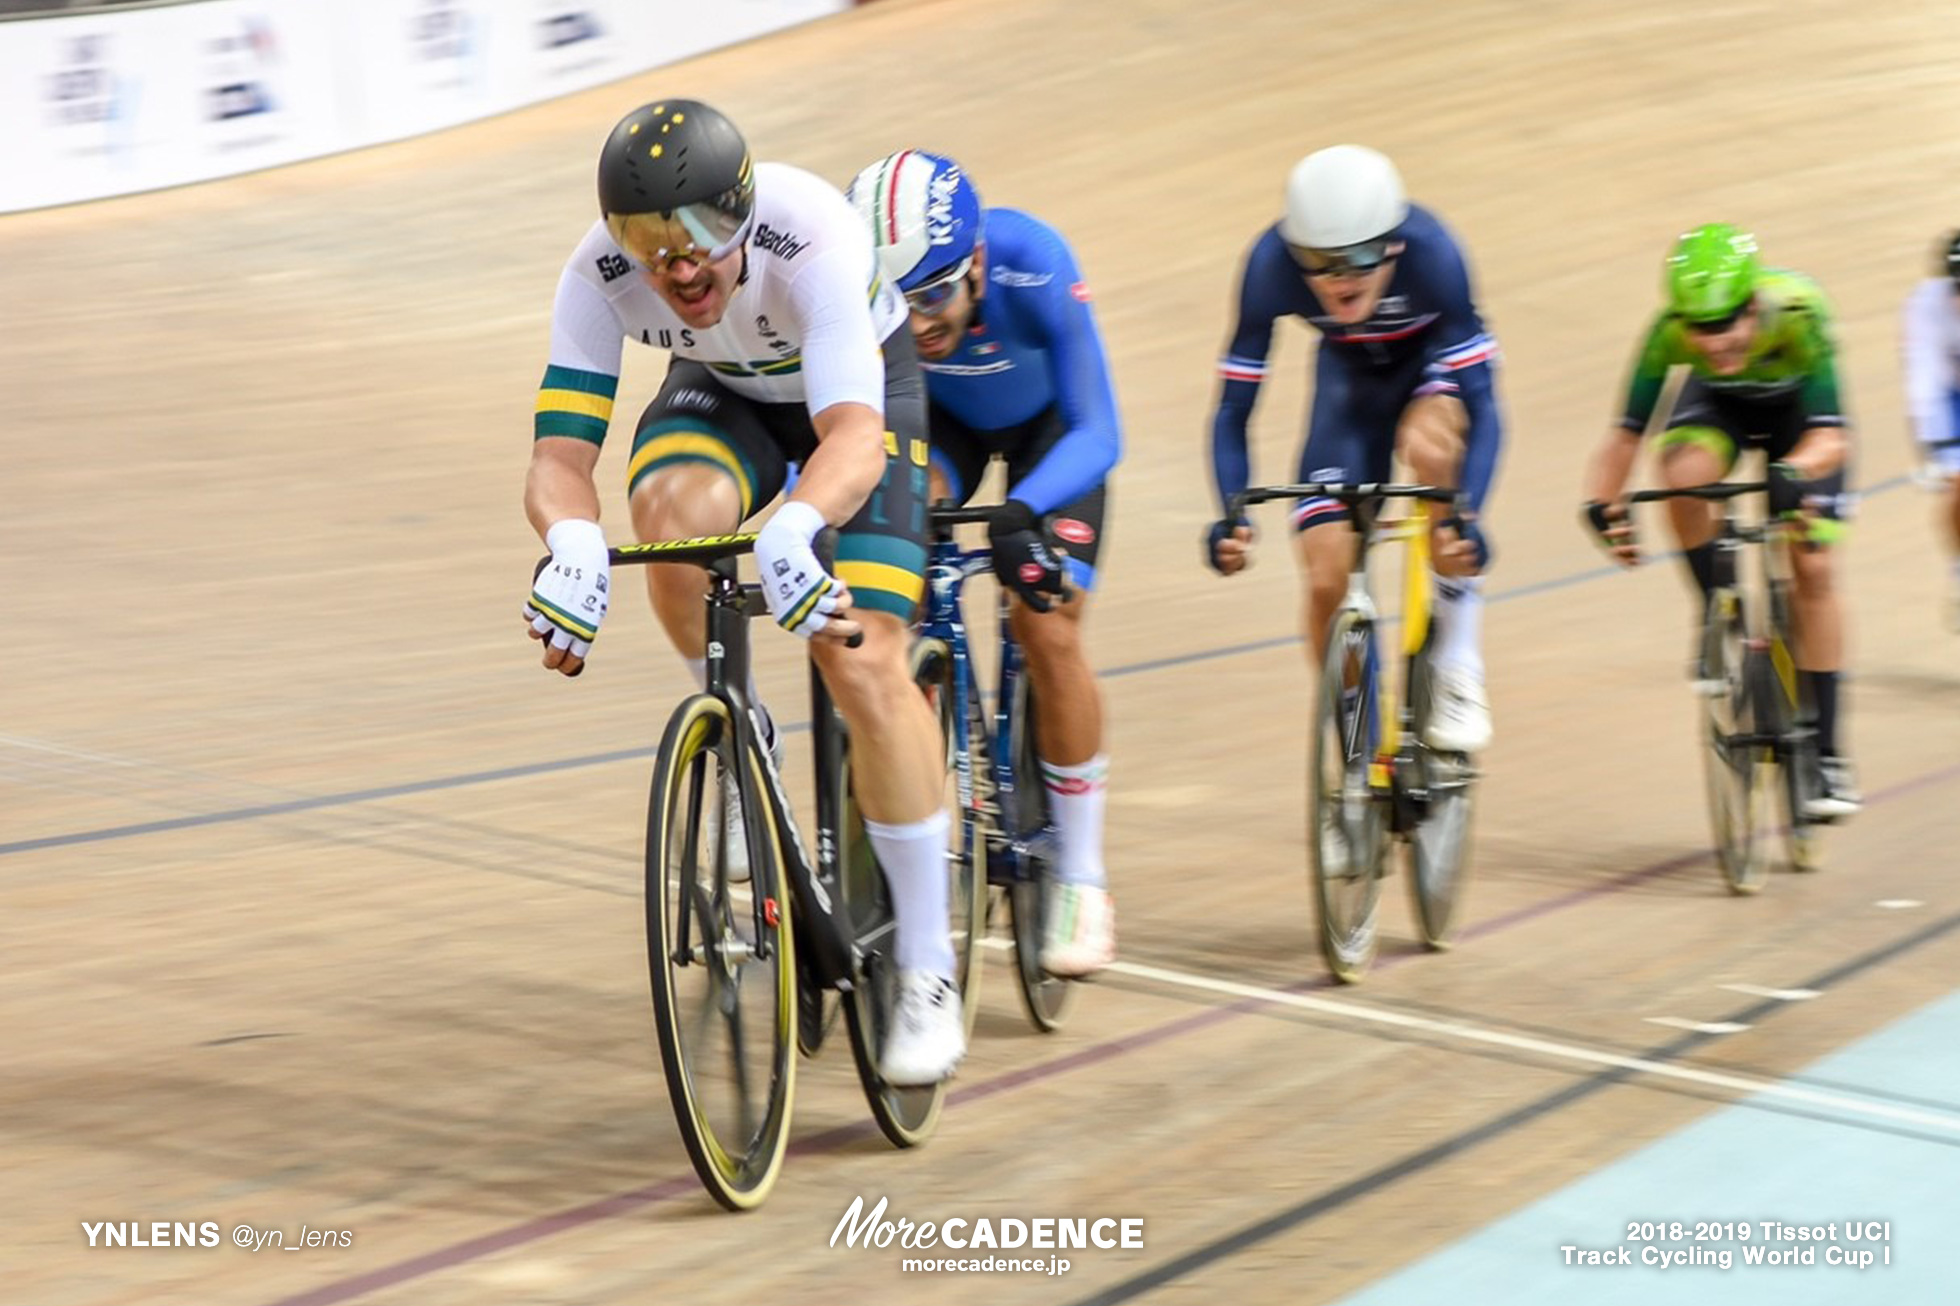 2018-2019 TRACK CYCLING WORLD CUP I Men's Scratch Race